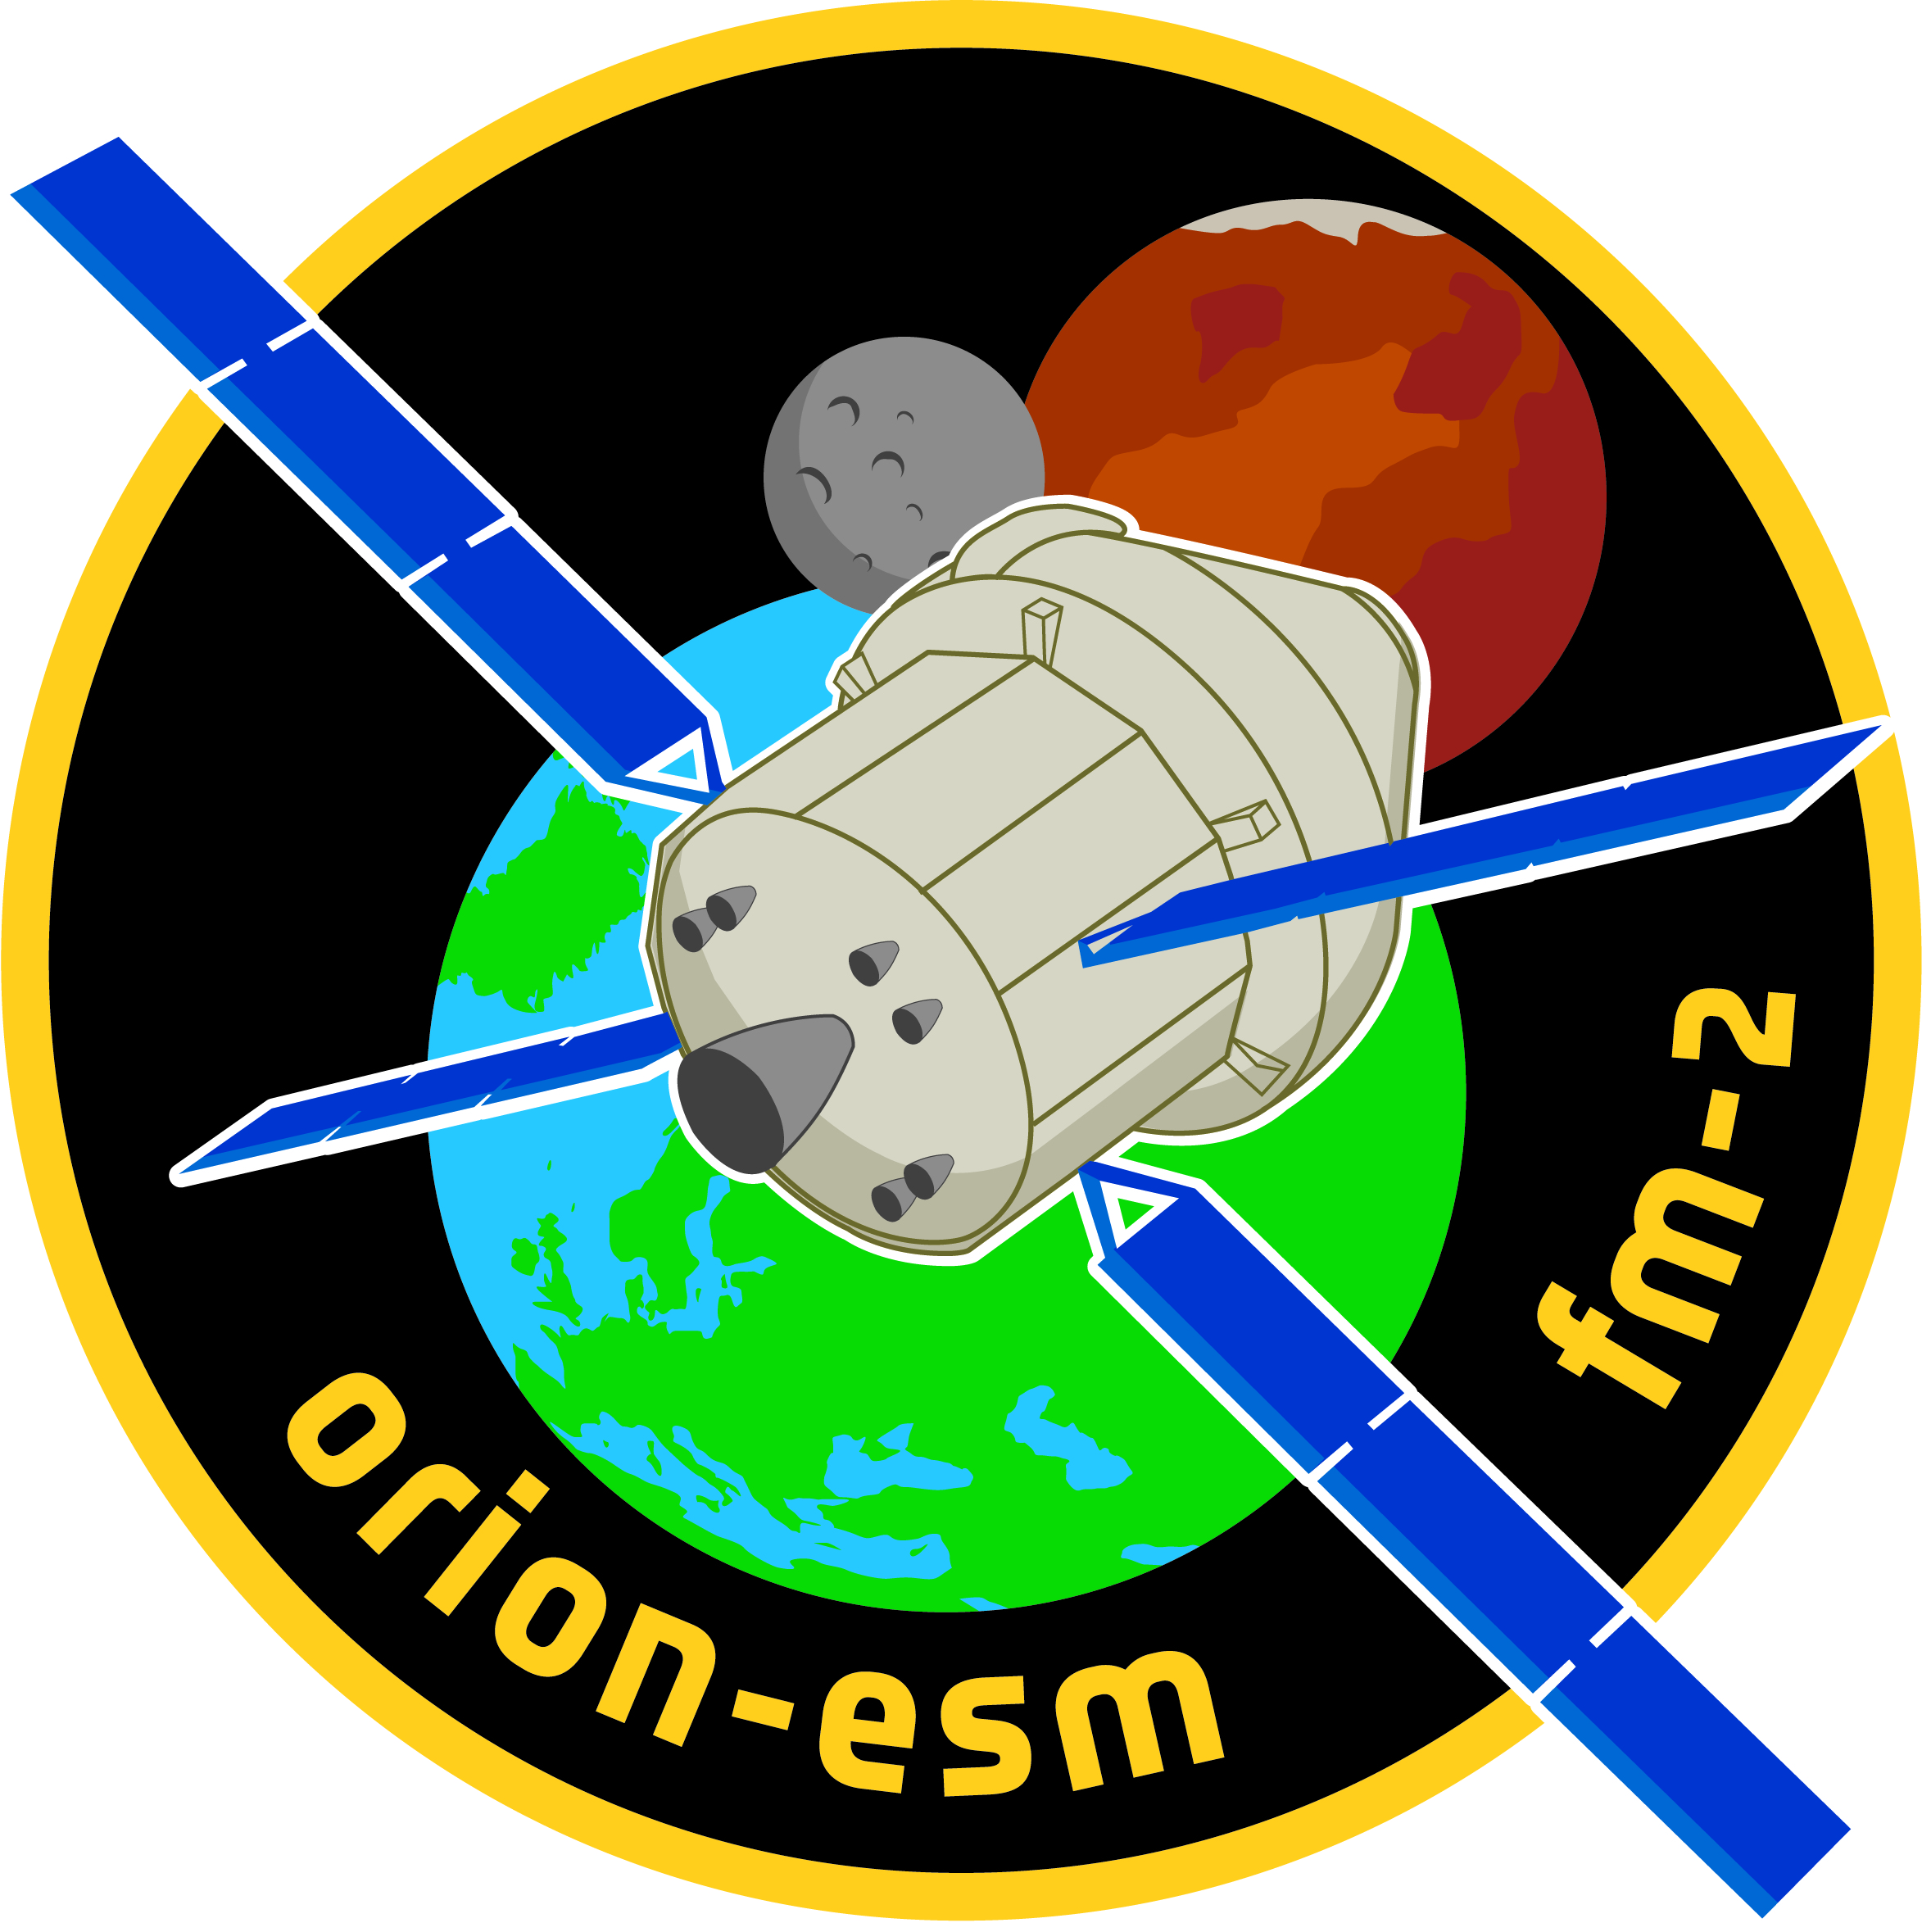 Building Orion service module for first astronaut mission / Orion.